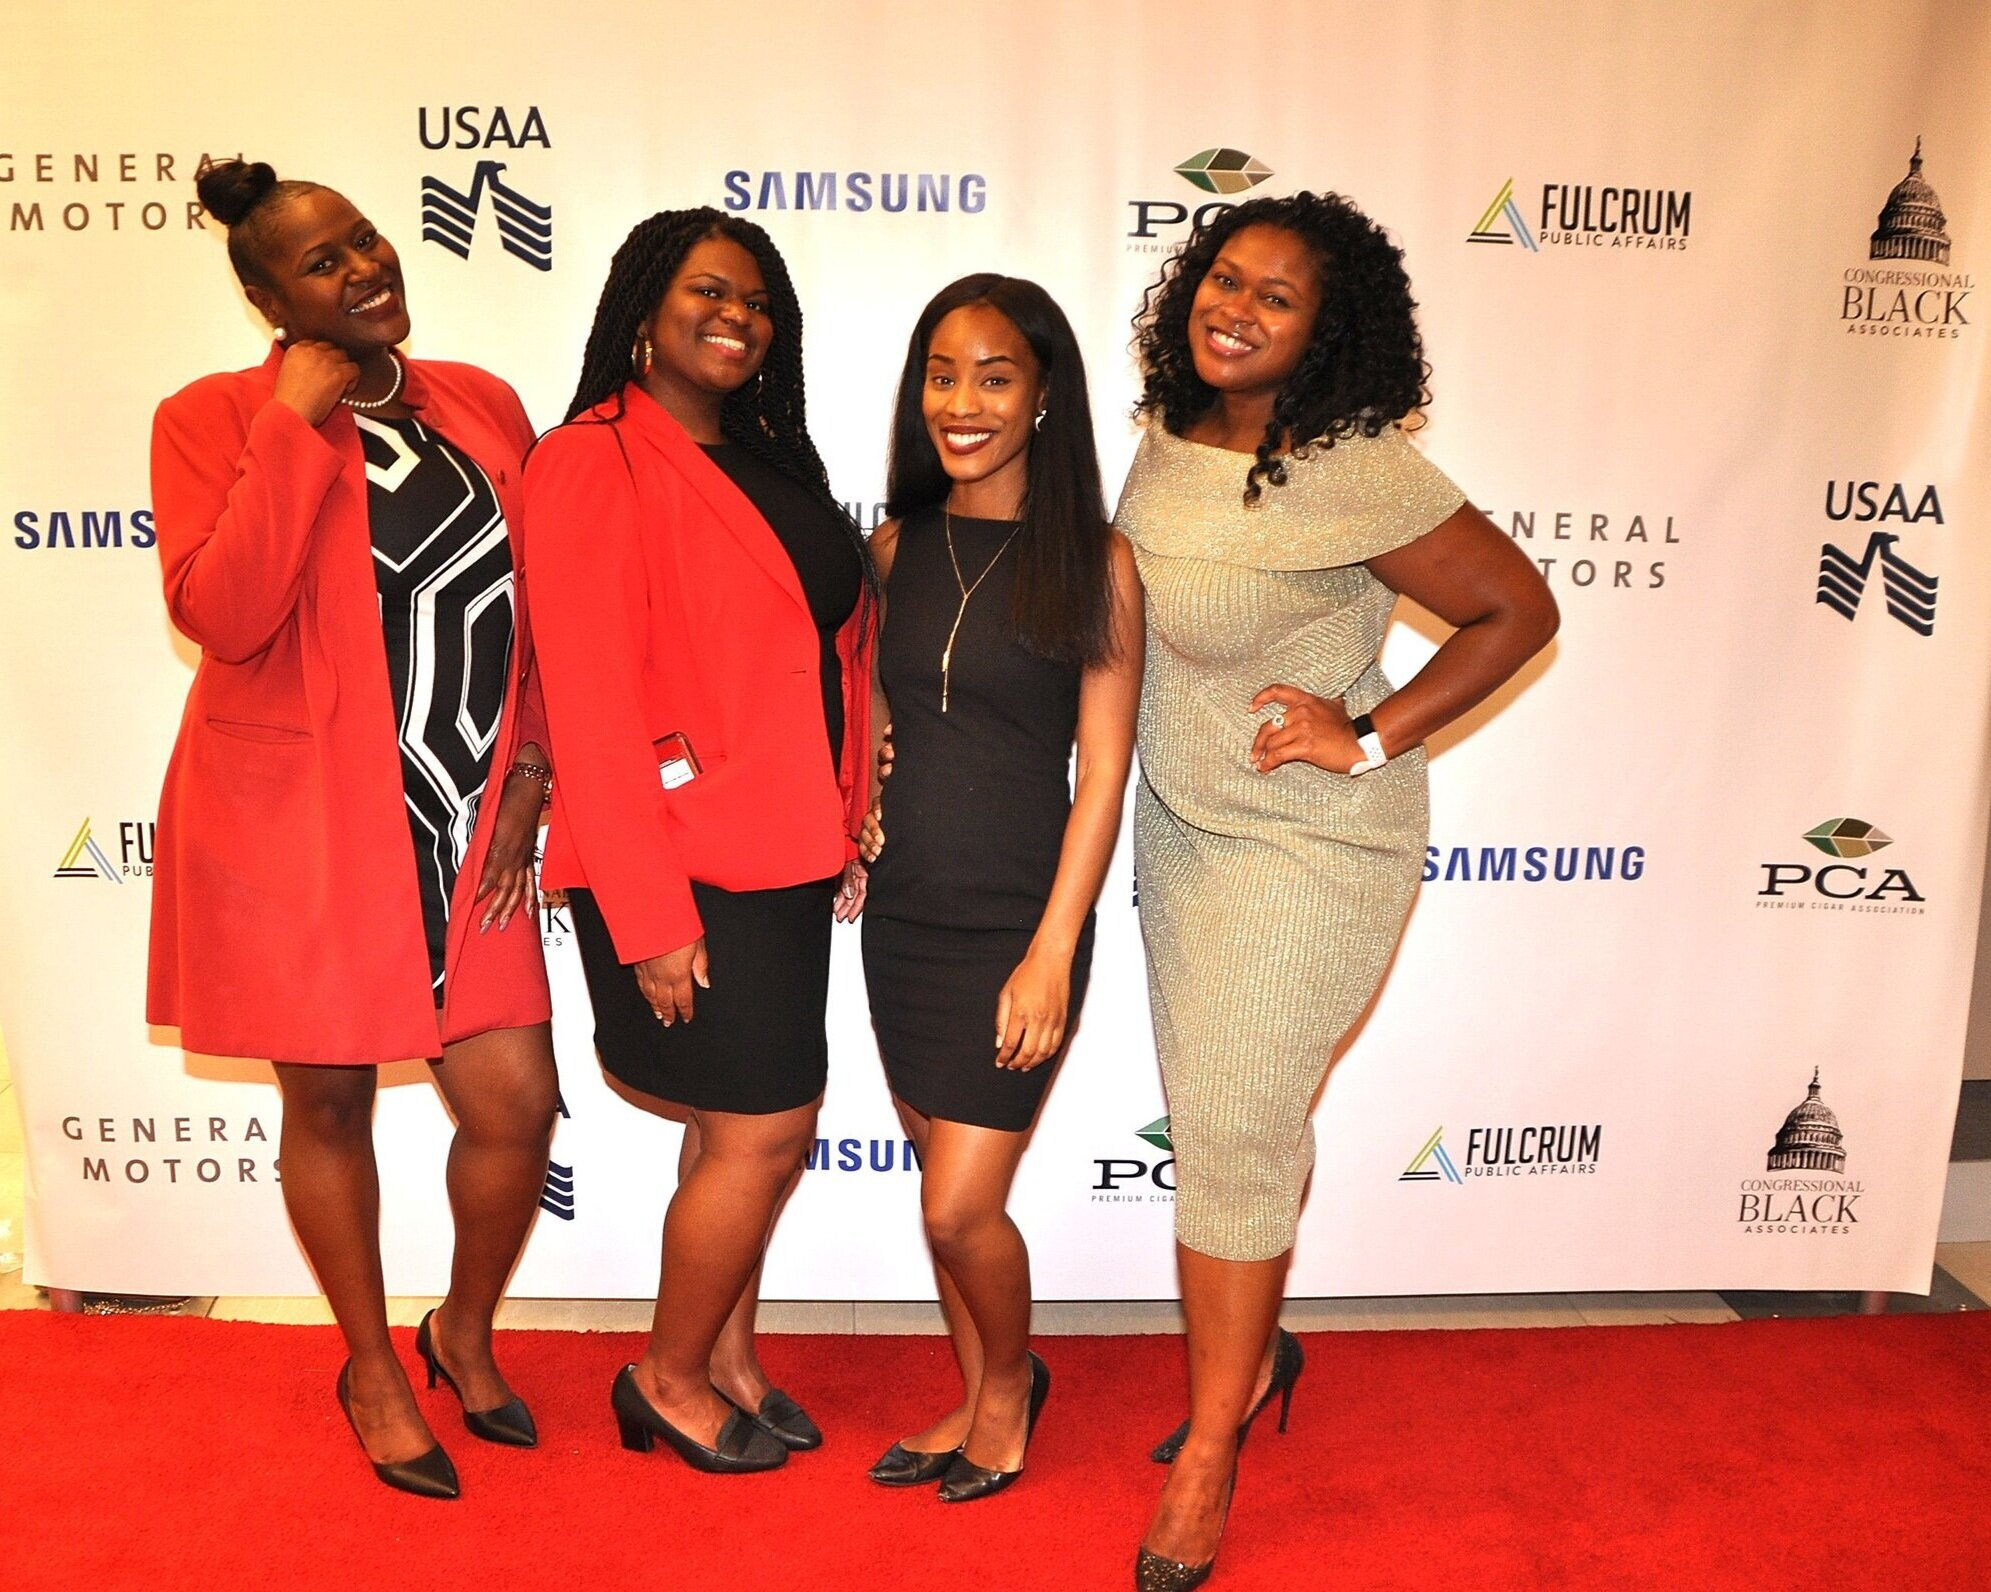 Ladies of CBA Executive Board: Alaura Ervin (Secretary); Audra Jackson (President); Herline Mathieu (Communications Chair); Ashley Bunn (Professional Development Chair)